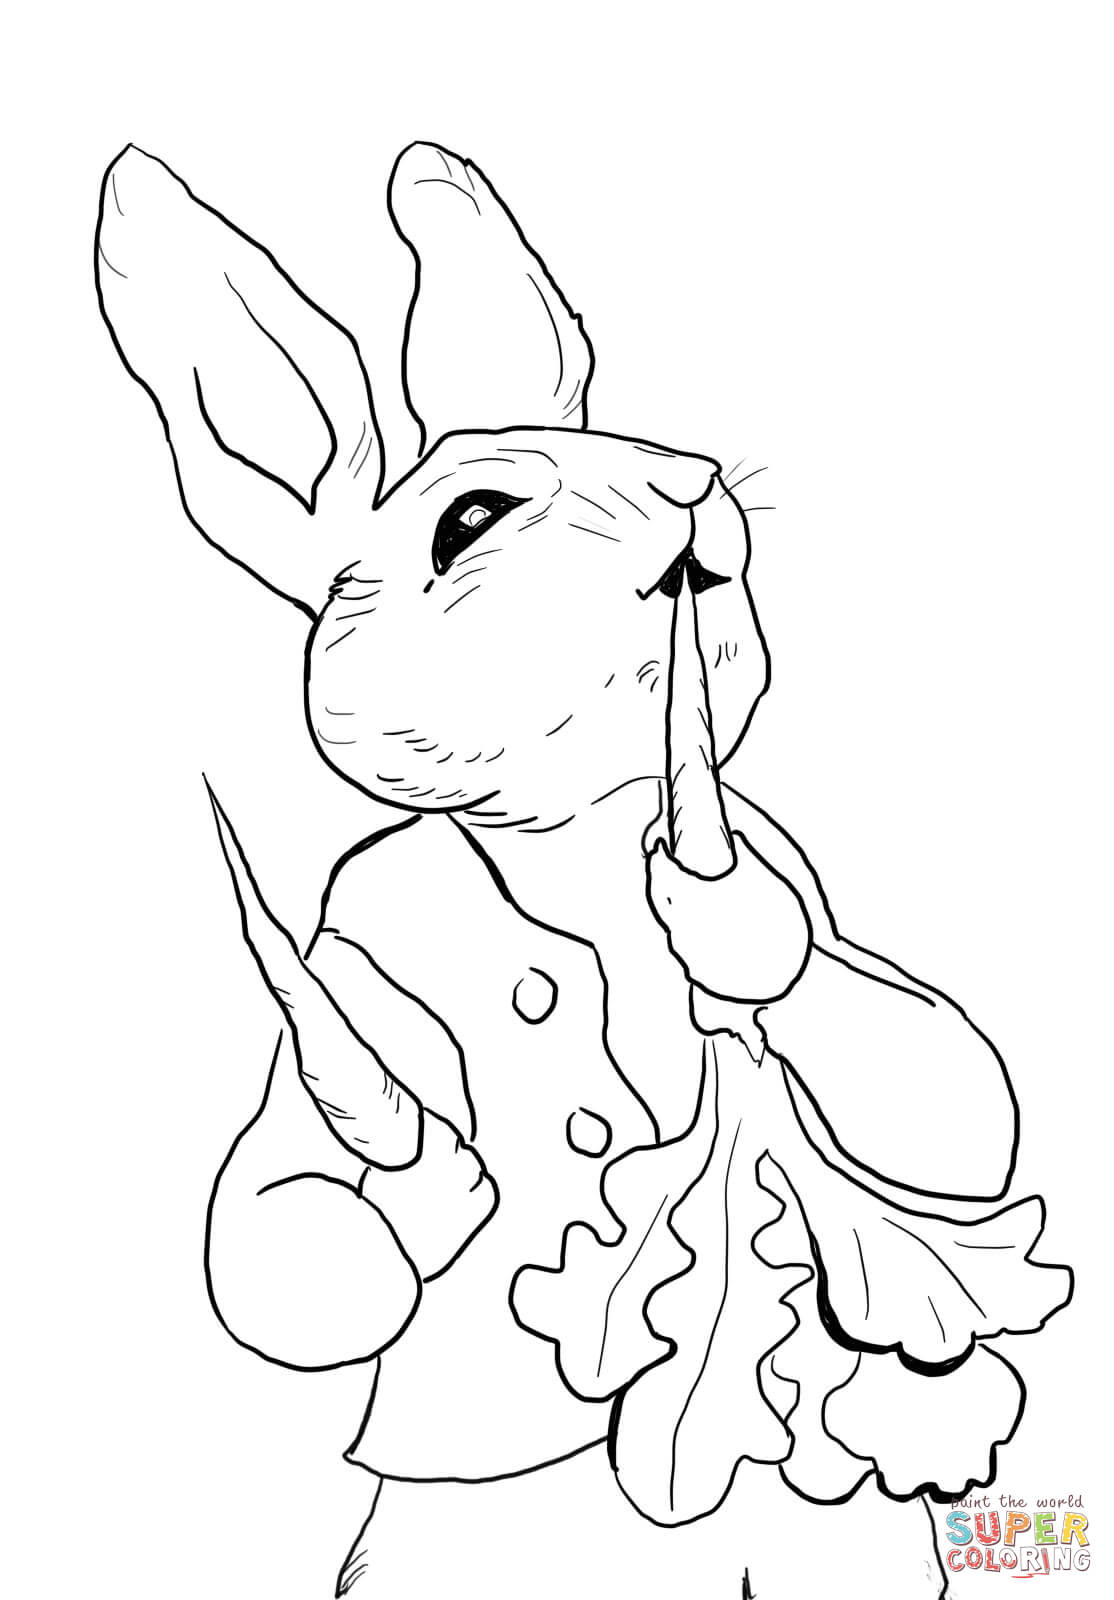 Peter Rabbit Eating Radishes Coloring Page | Free Printable Coloring - Free Printable Peter Rabbit Coloring Pages